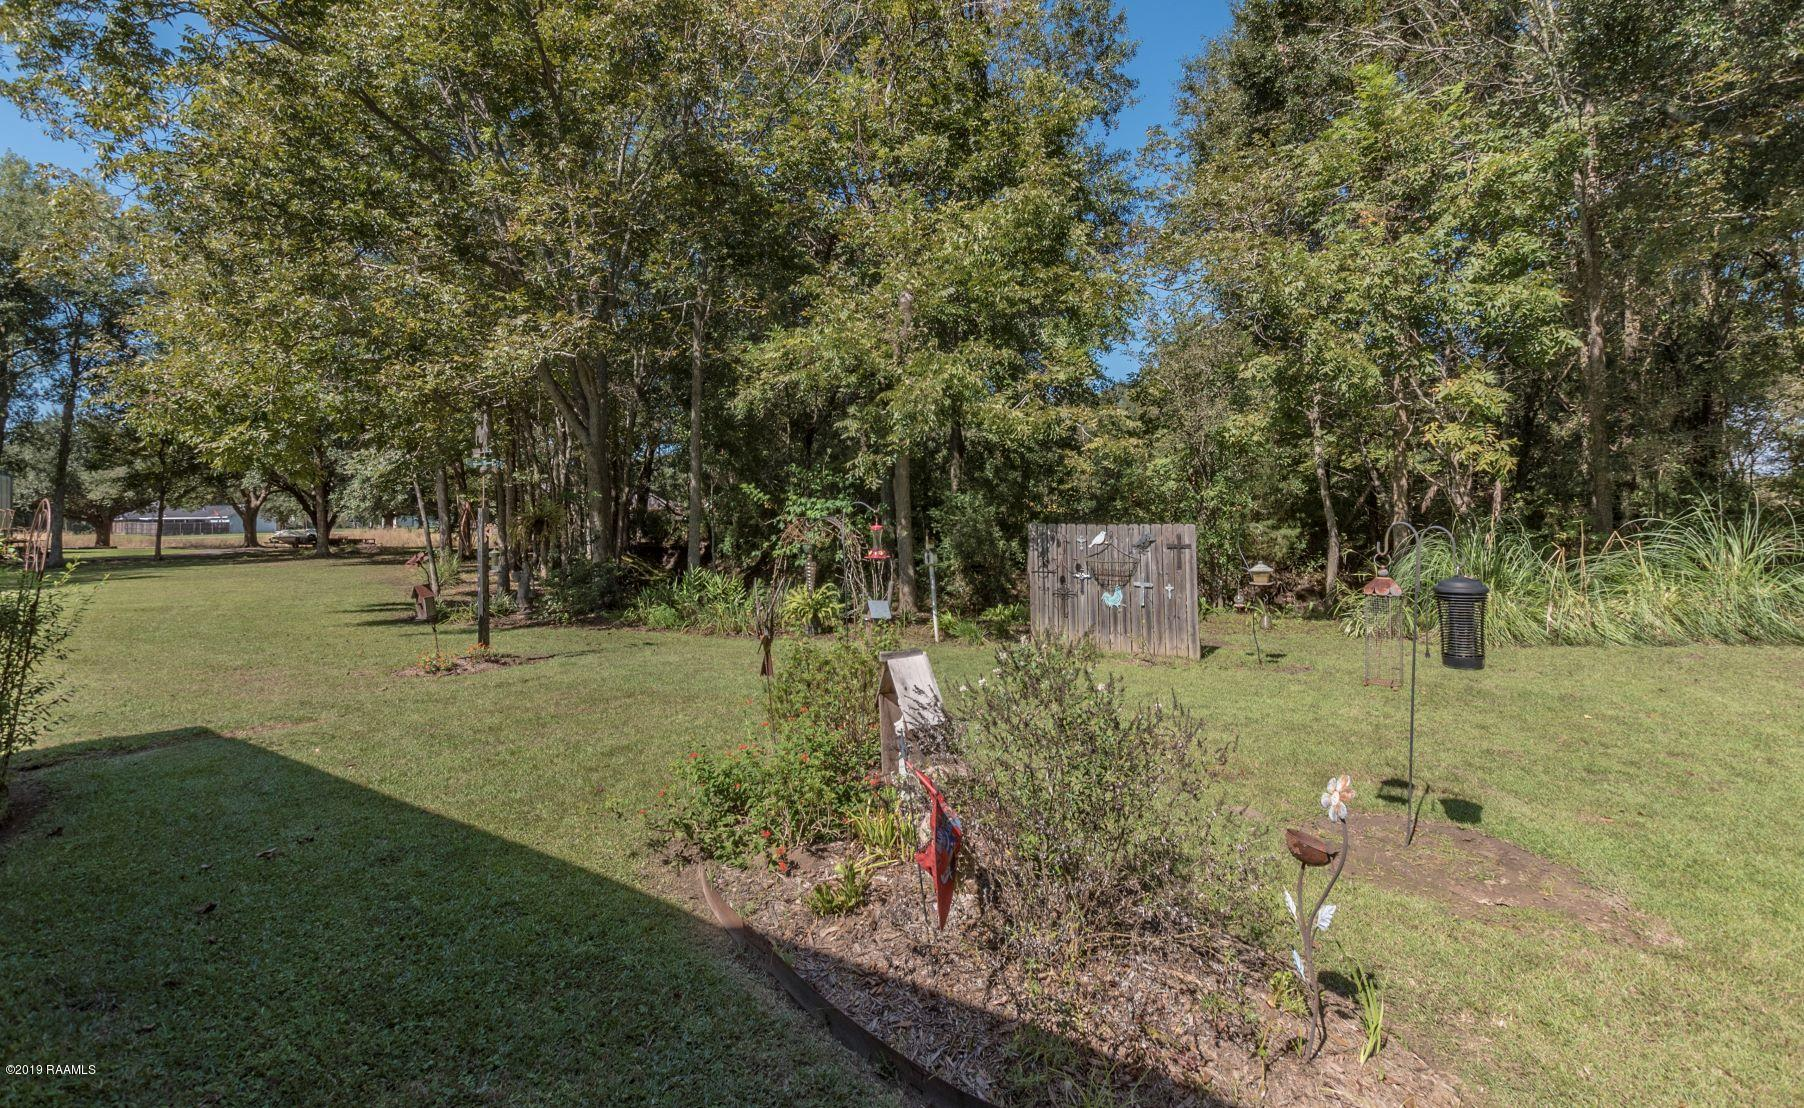 704 Ombrage Road, Carencro, LA 70520 Photo #34